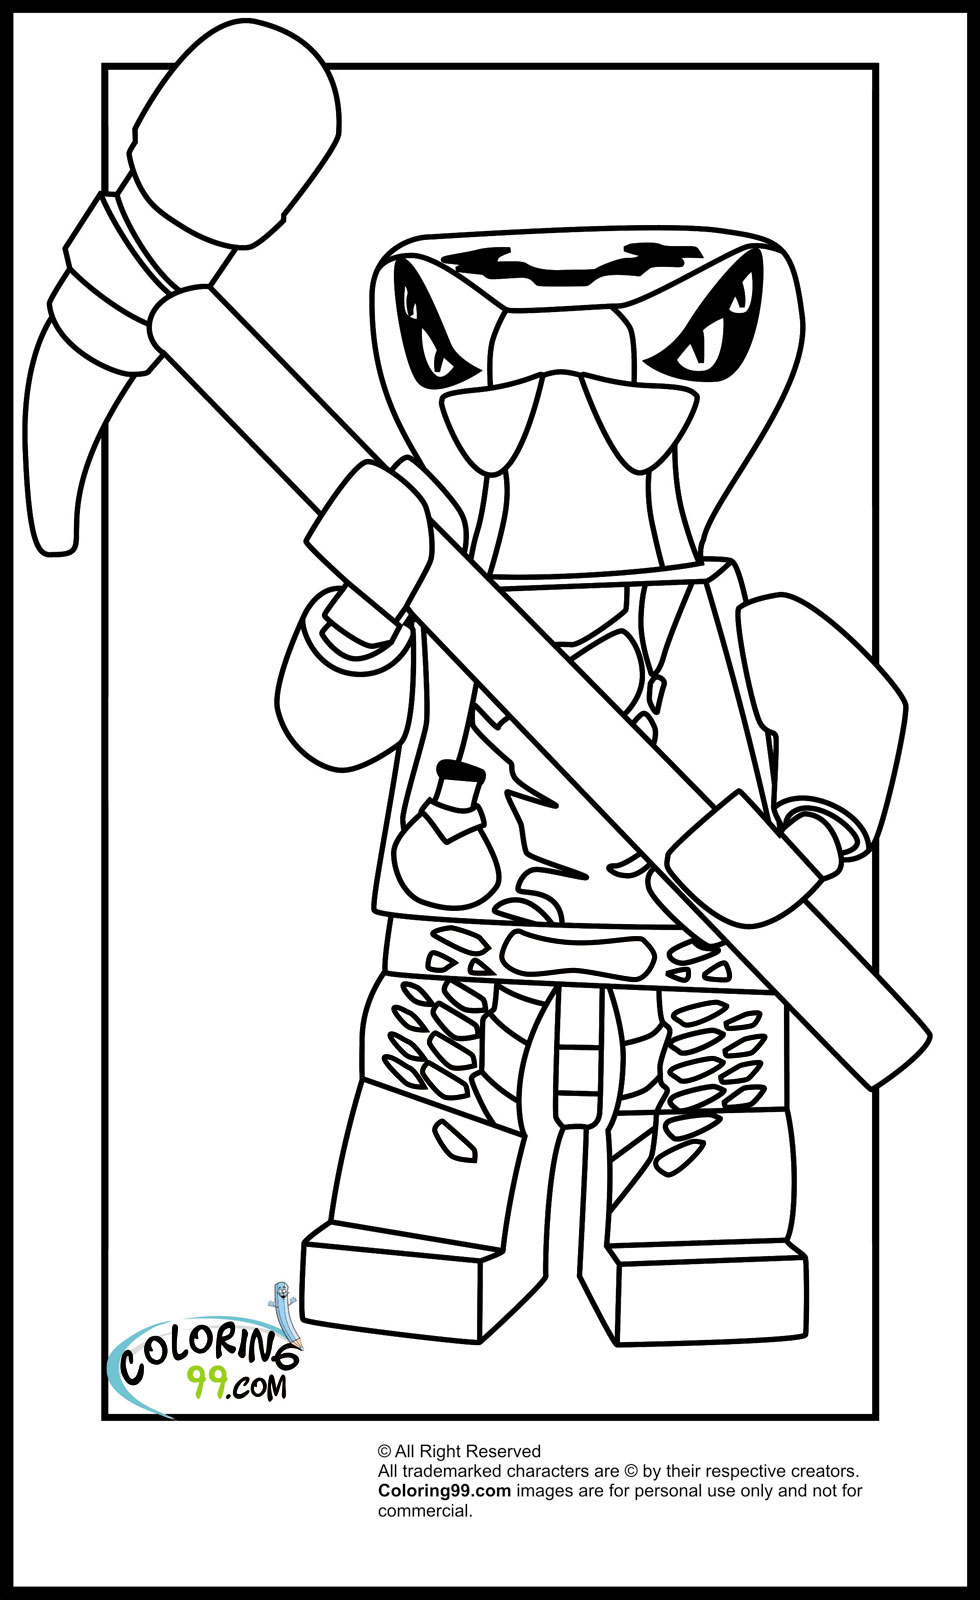 It's just a photo of Agile ninjago coloring picture